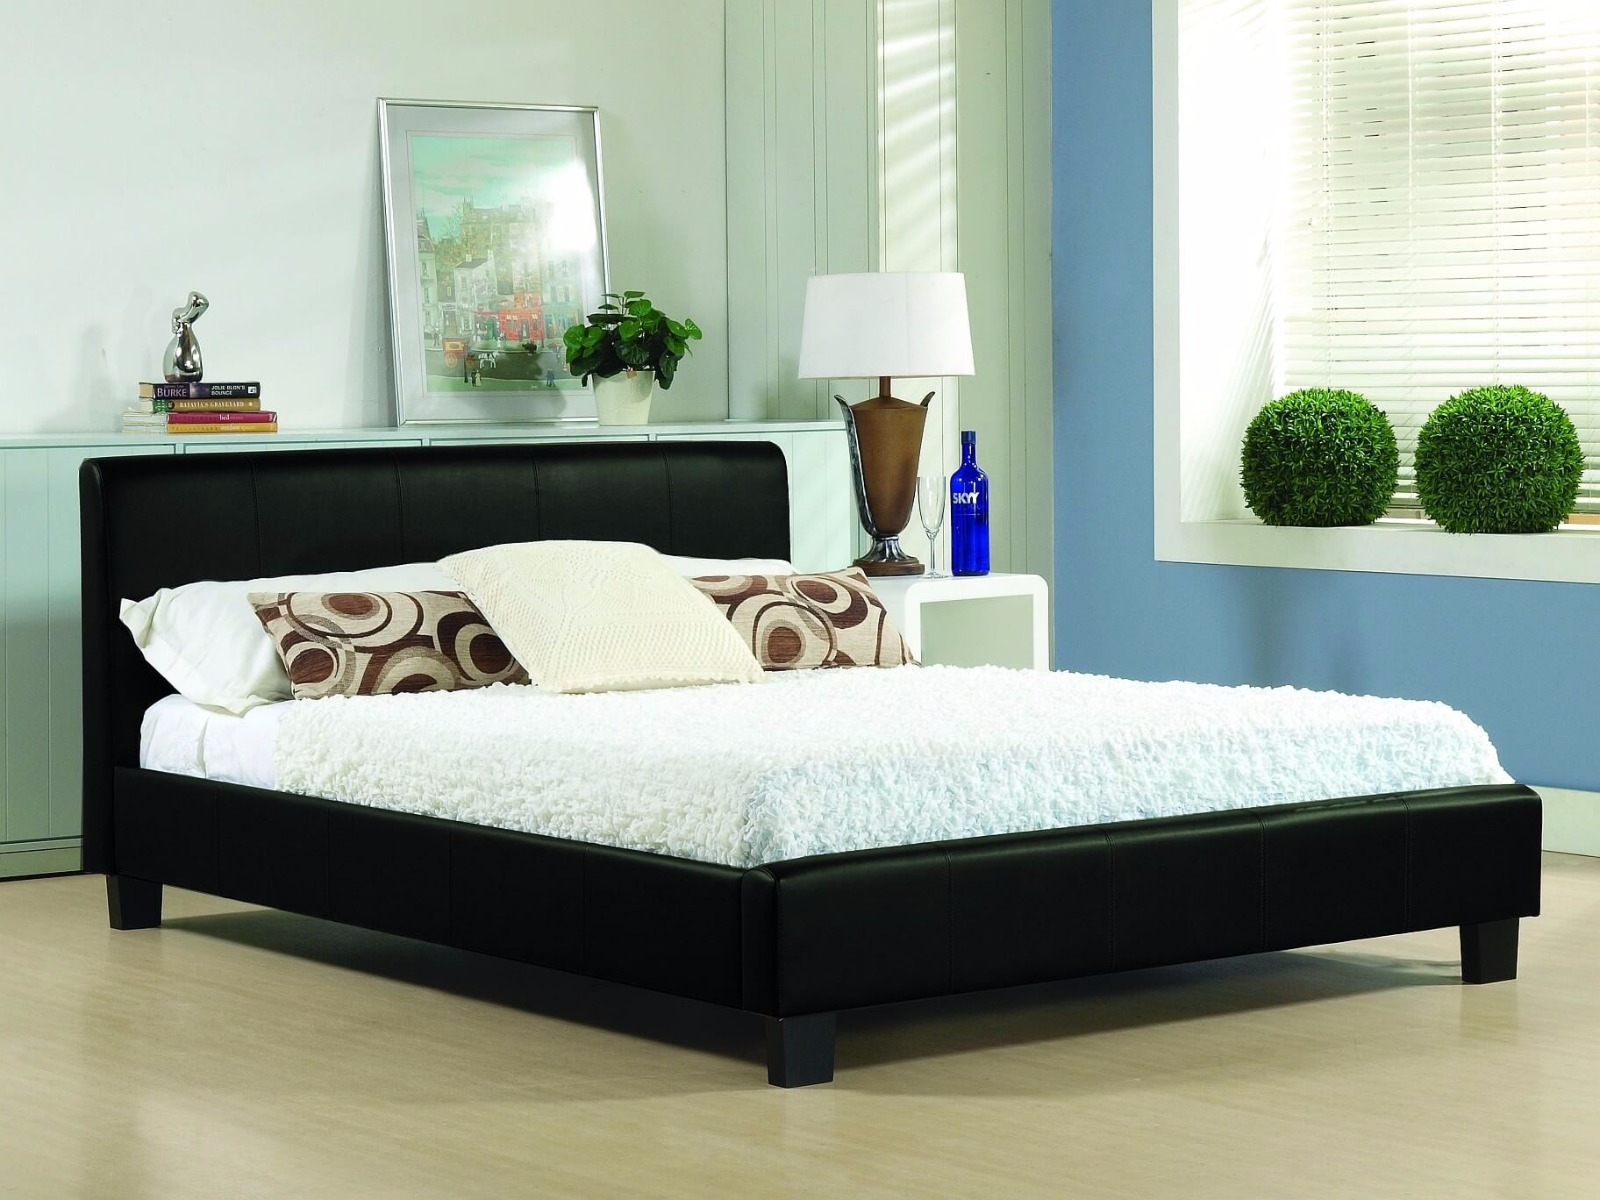 https://www.firstfurniture.co.uk/pub/media/catalog/product/h/a/hamburg_black.jpg